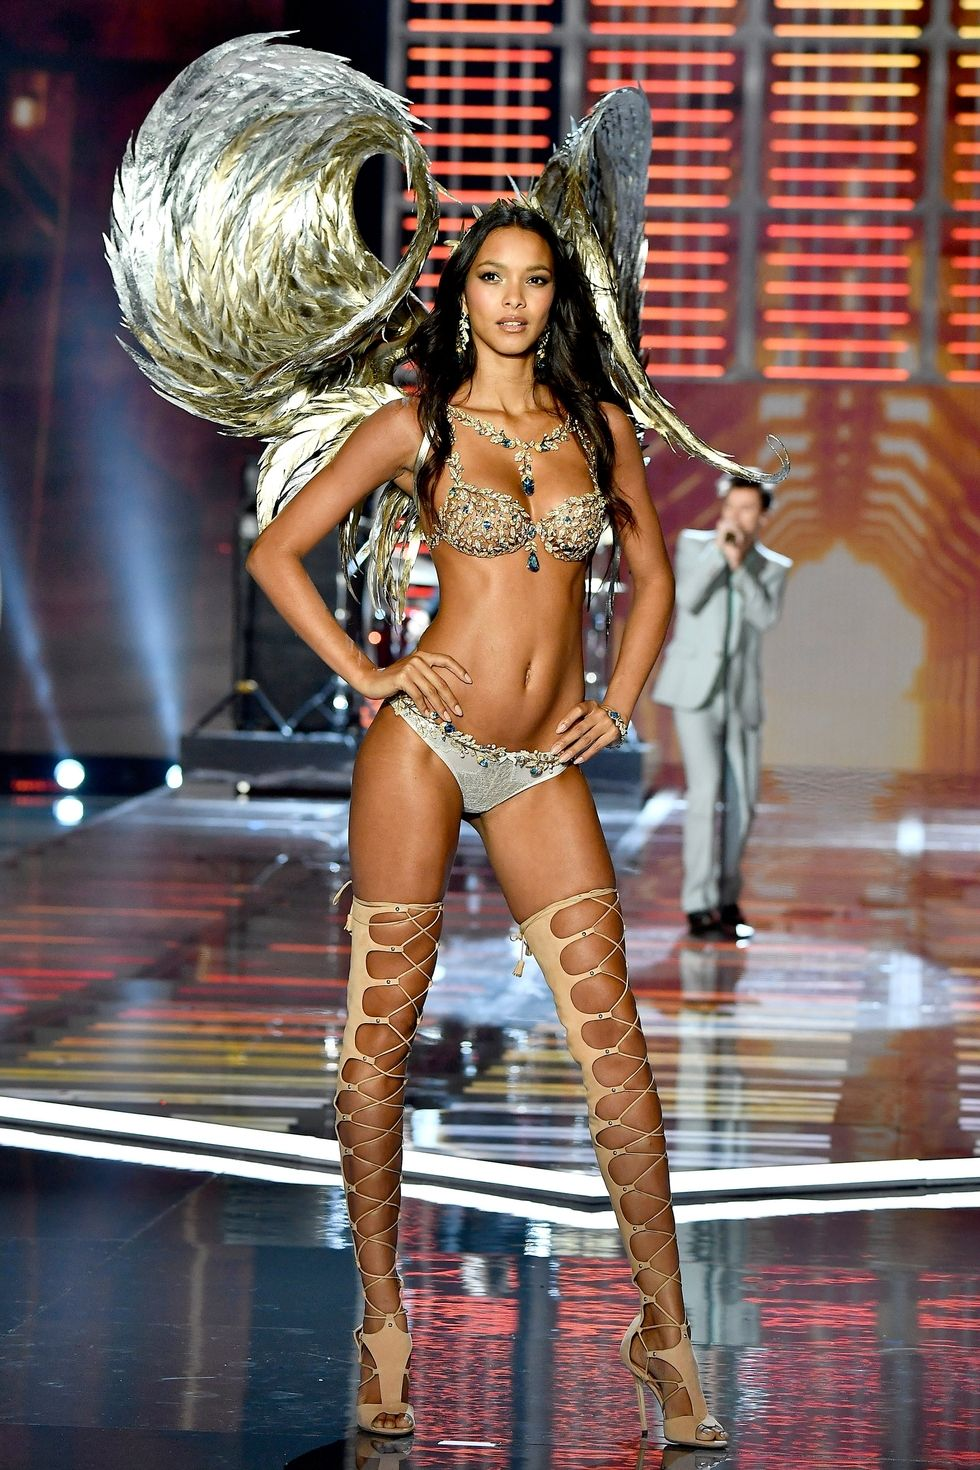 Lais Ribeiro - The moment everyone was waiting for. Lais showed off the amazing Champagne Midnight Fantasy Bra. The multi-million dollar piece of lingerie stunned as the Brazilian angel strutted with golden wings.